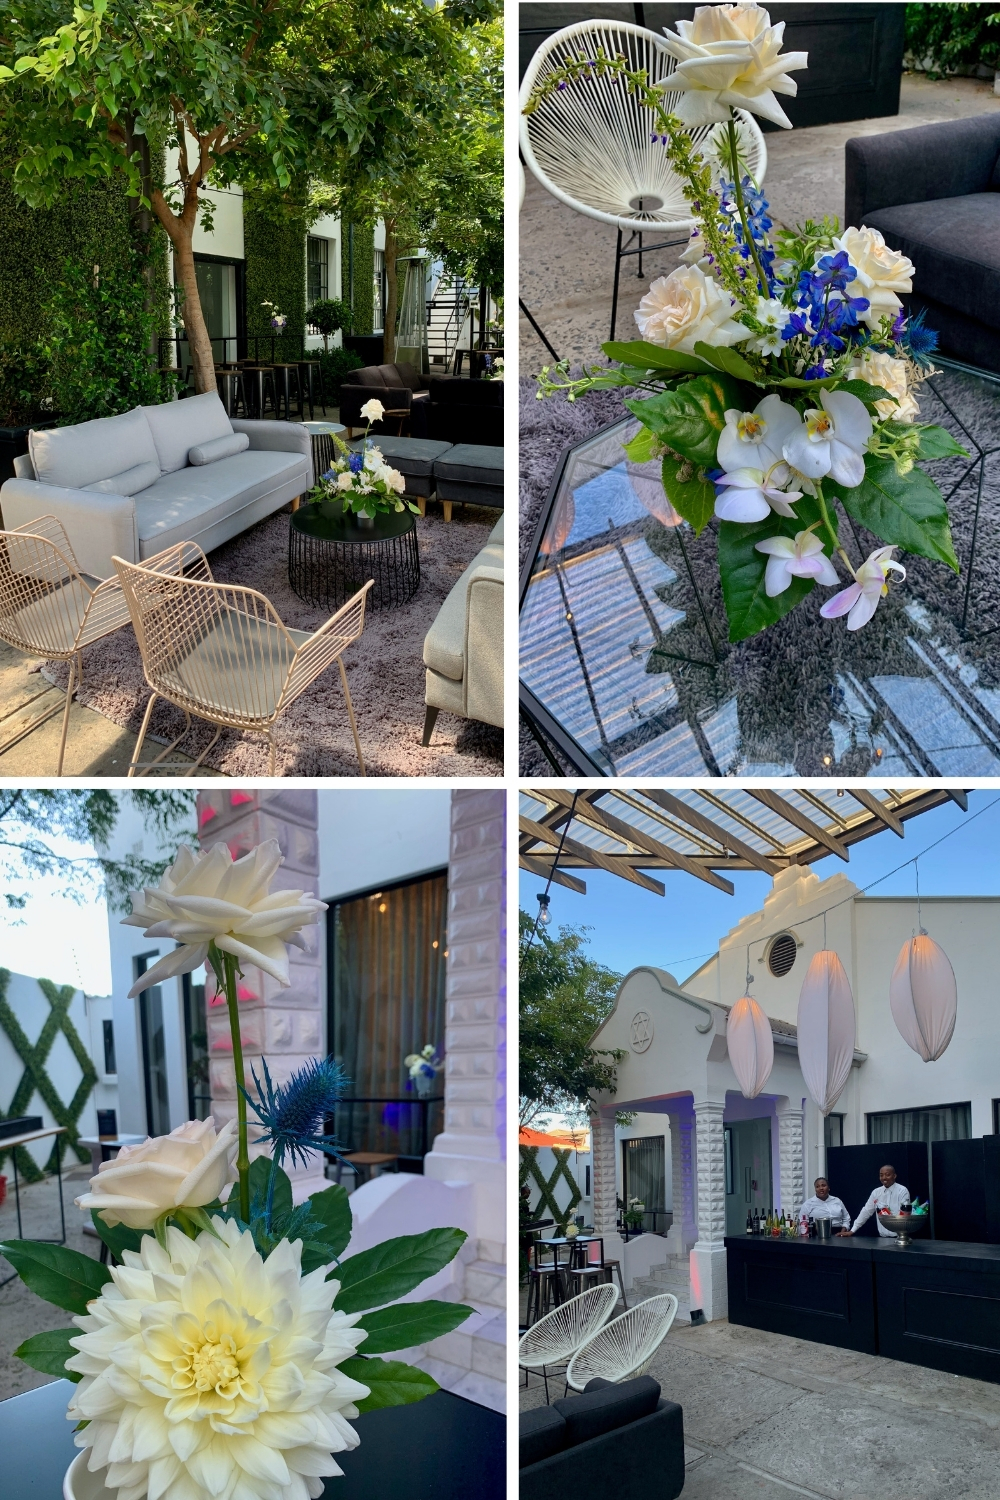 Barmitzvah decor and flowers in outdoor area